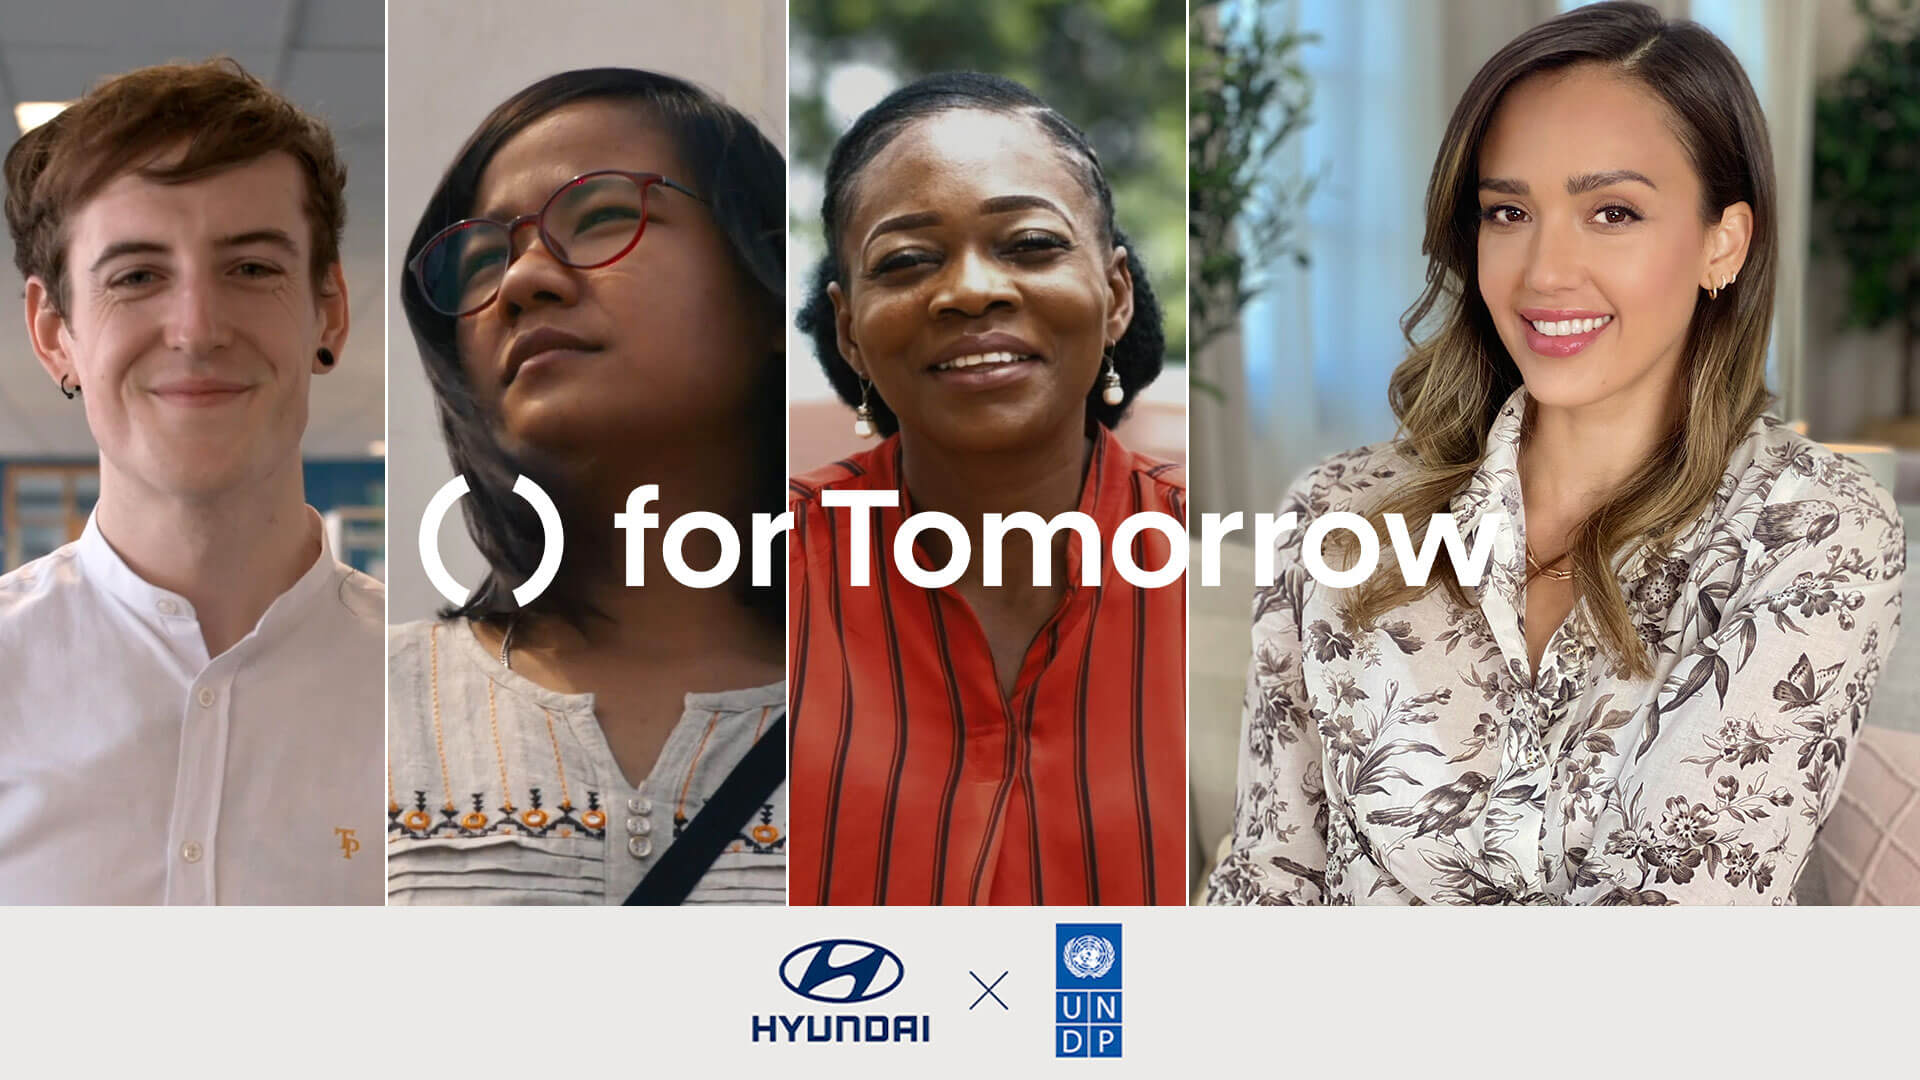 Hyundai for tomorrow image with 4 people